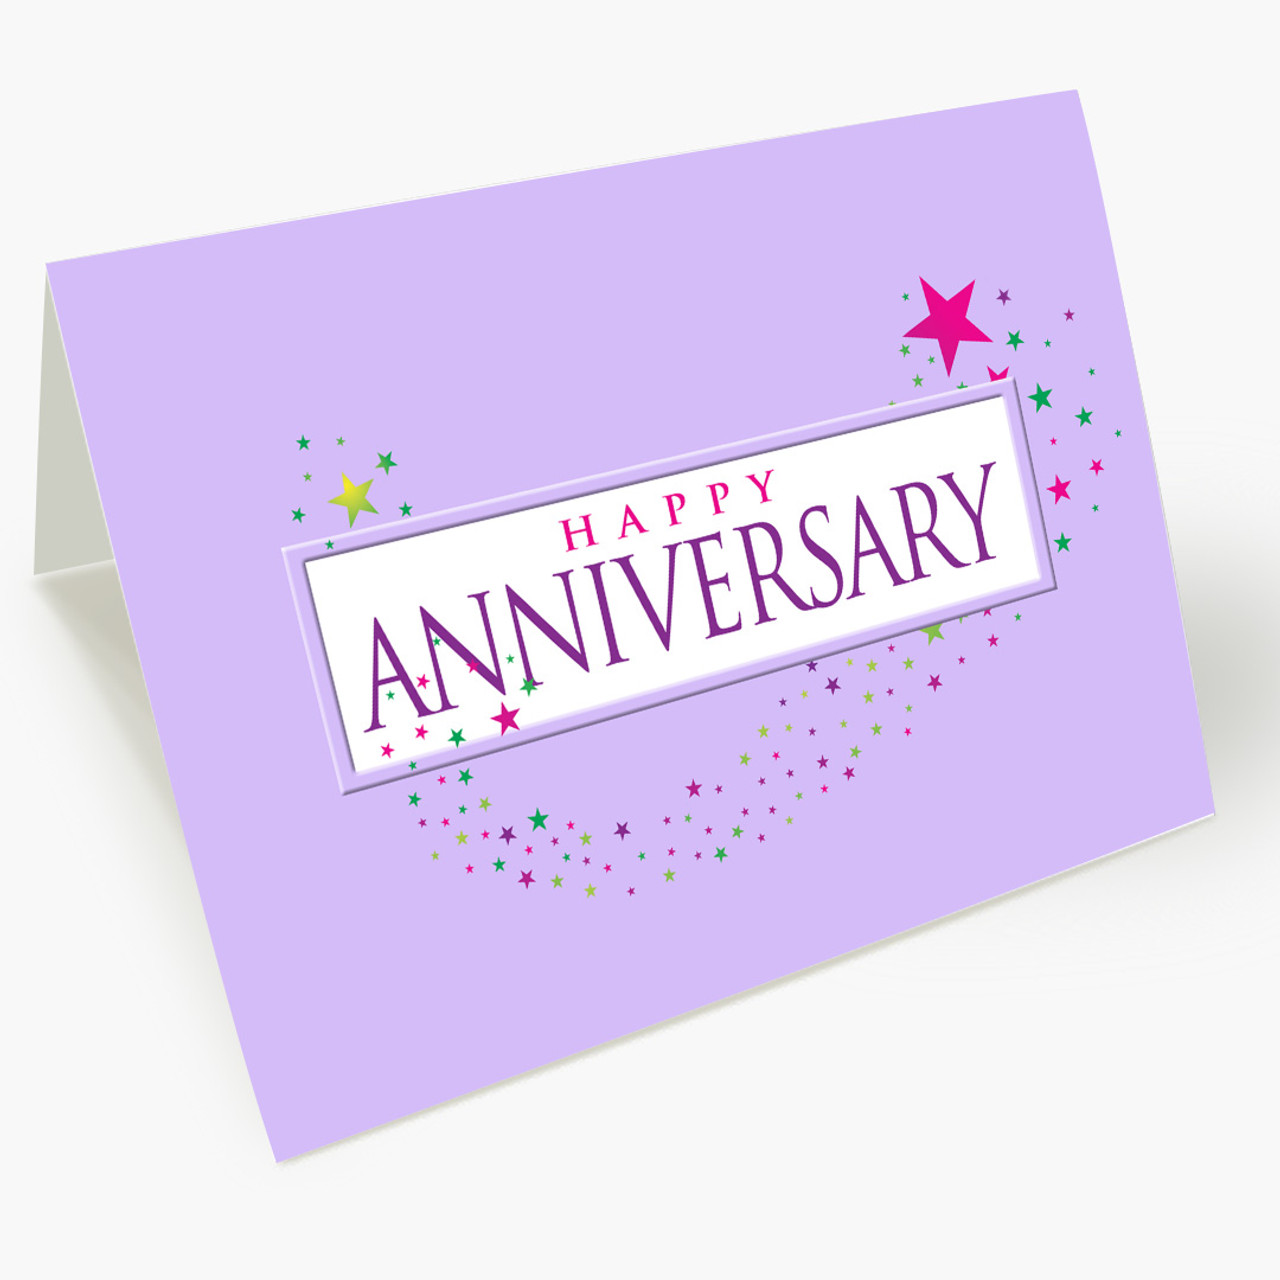 A Happy Anniversary Card